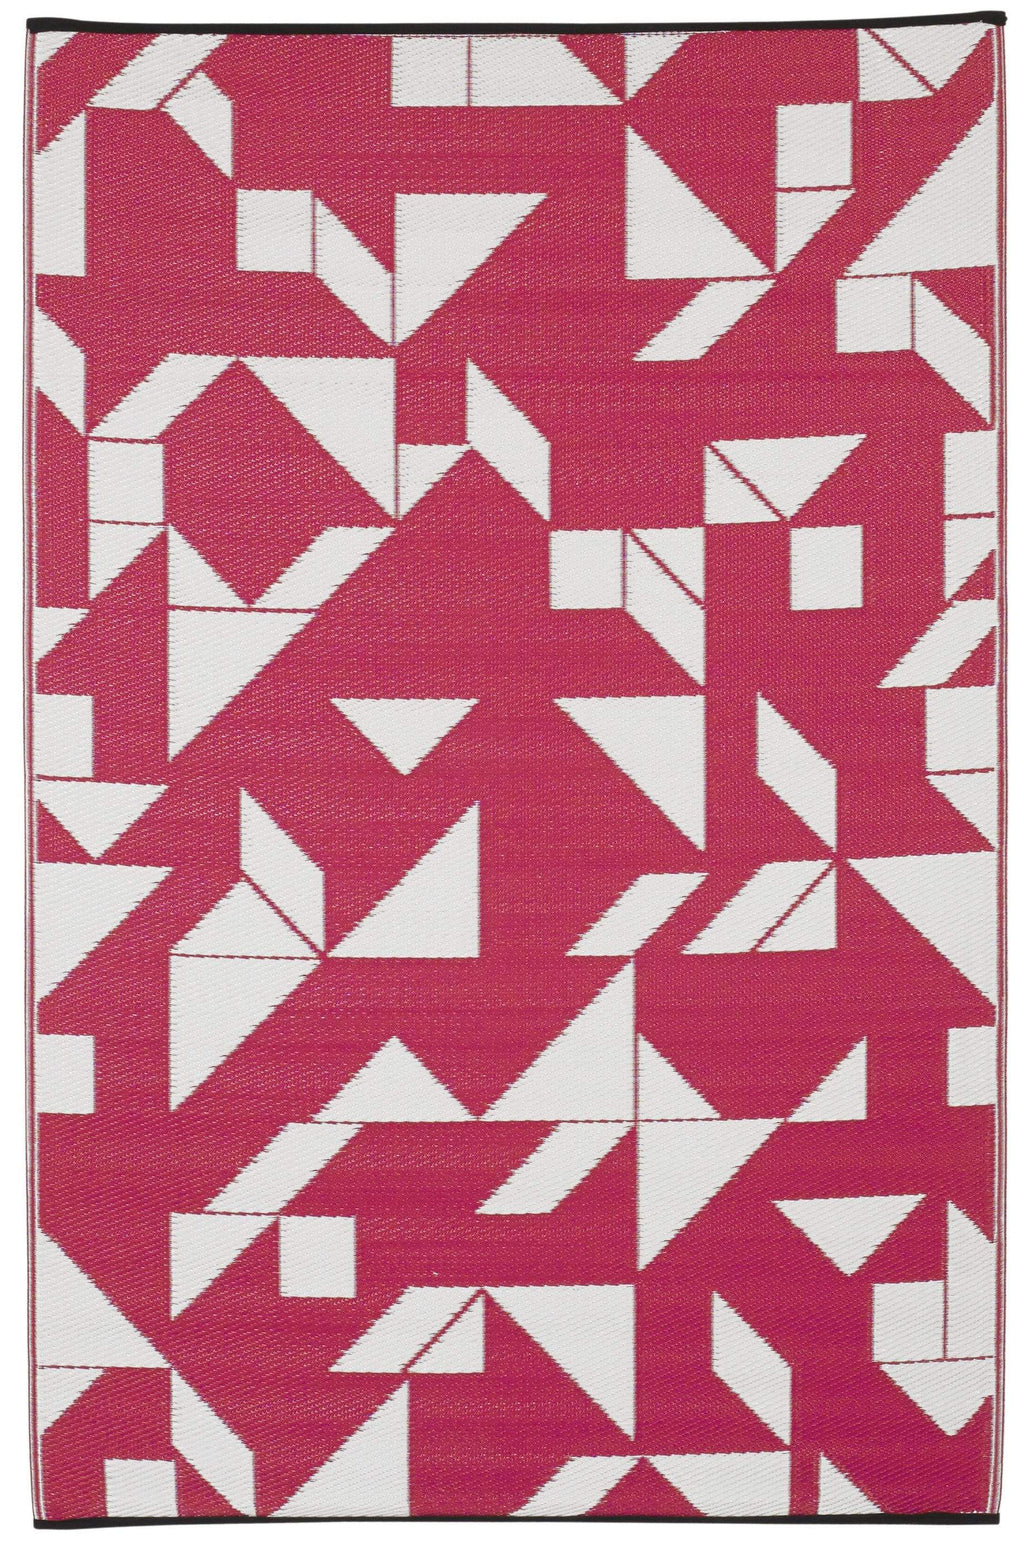 4' x 6' Santa Cruz - Beetroot & White Rug